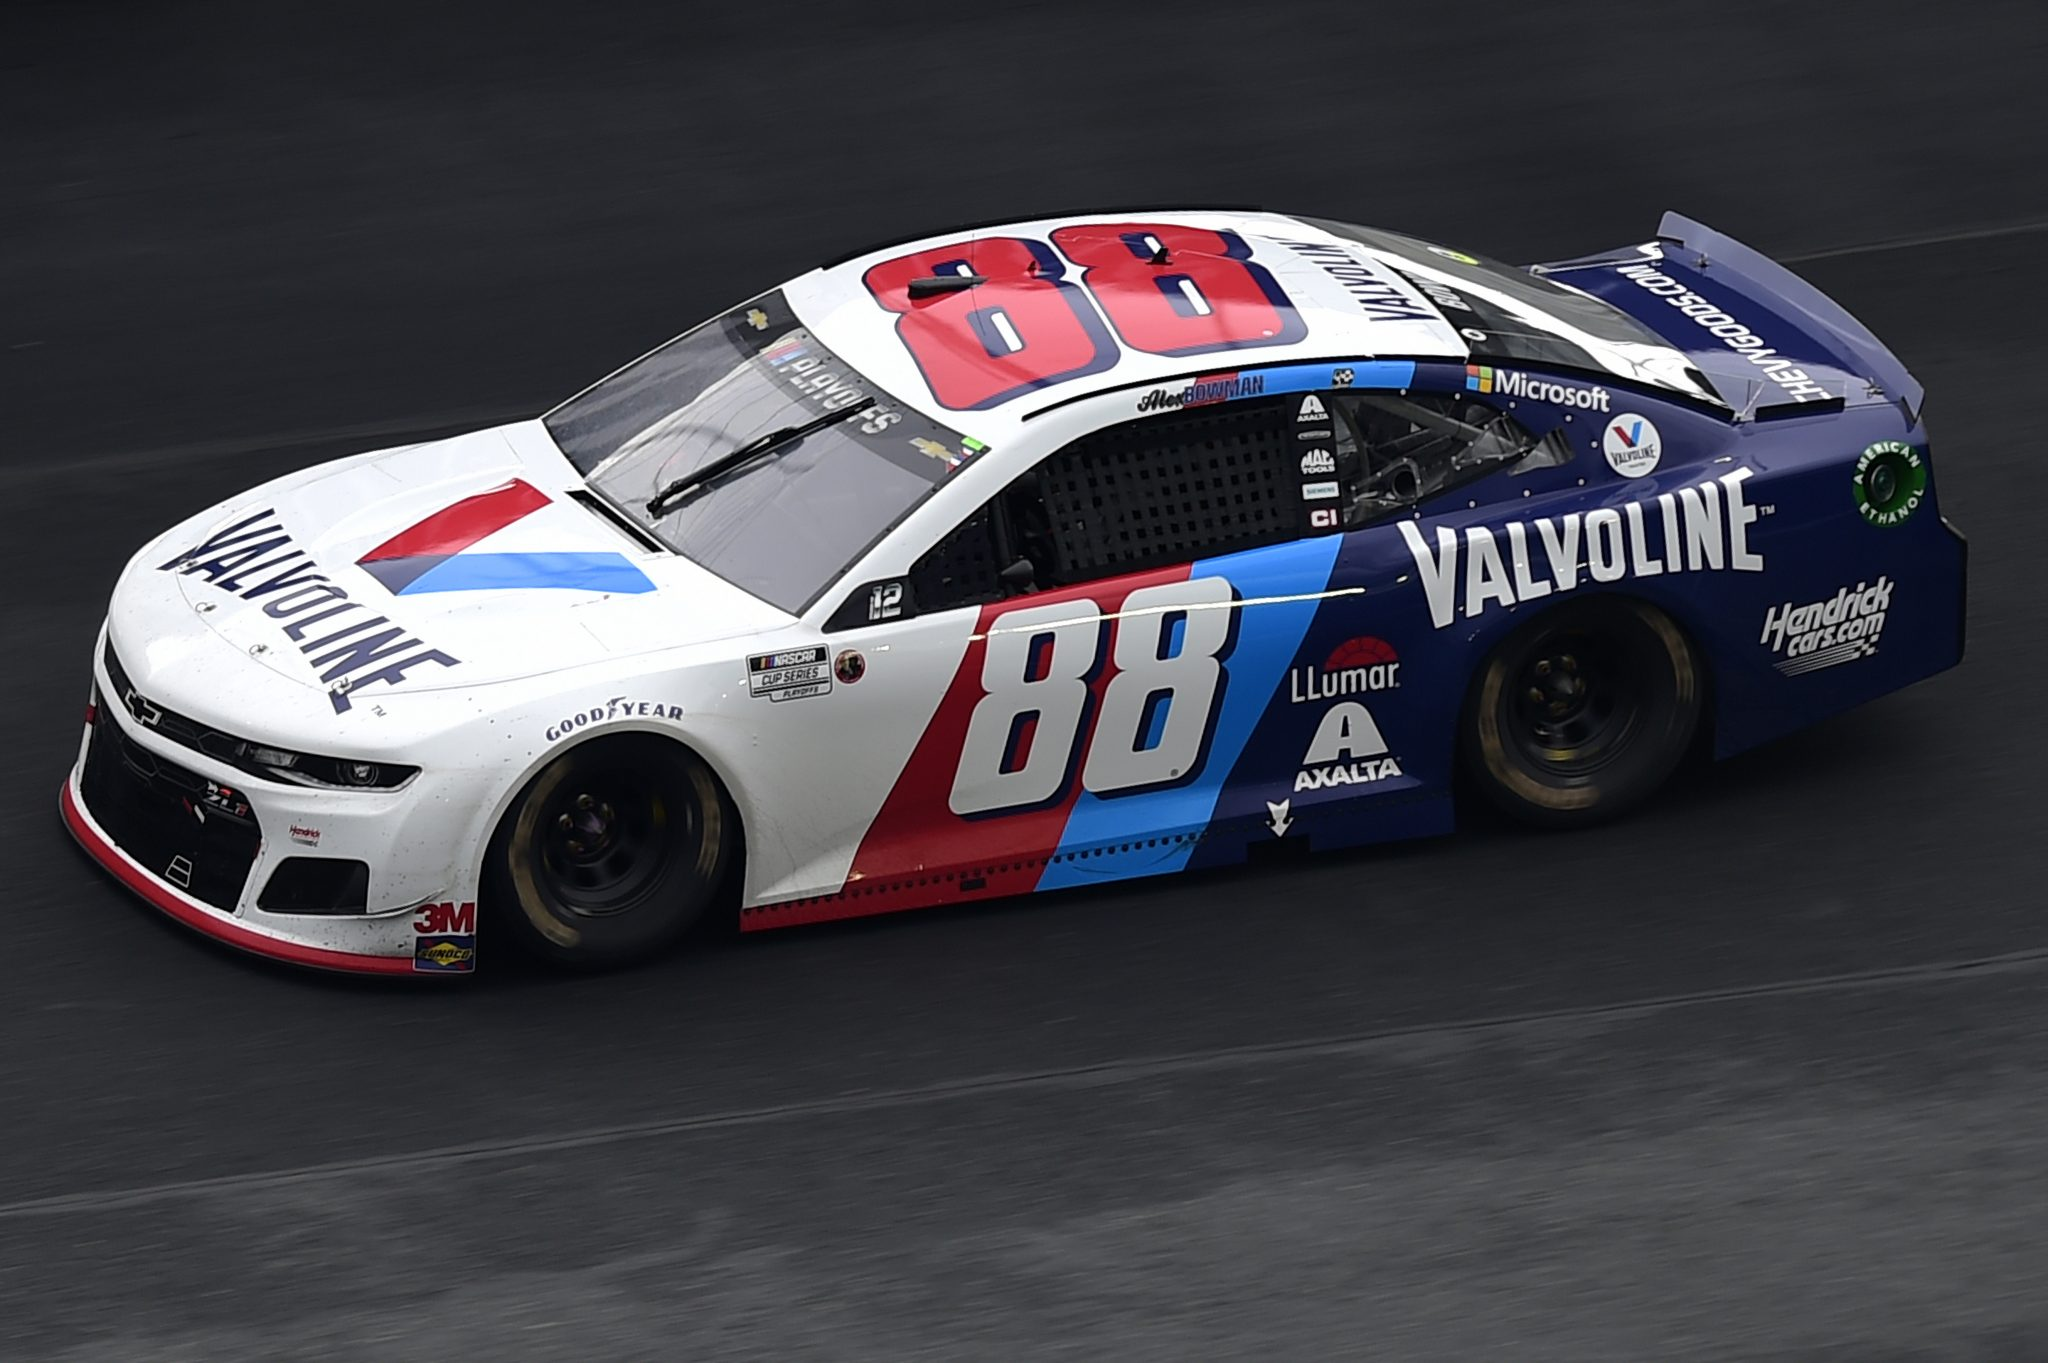 CONCORD, NORTH CAROLINA - OCTOBER 11: Alex Bowman, driver of the #88 Valvoline Chevrolet, drives during the NASCAR Cup Series Bank of America ROVAL 400 at Charlotte Motor Speedway on October 11, 2020 in Concord, North Carolina. (Photo by Jared C. Tilton/Getty Images) | Getty Images